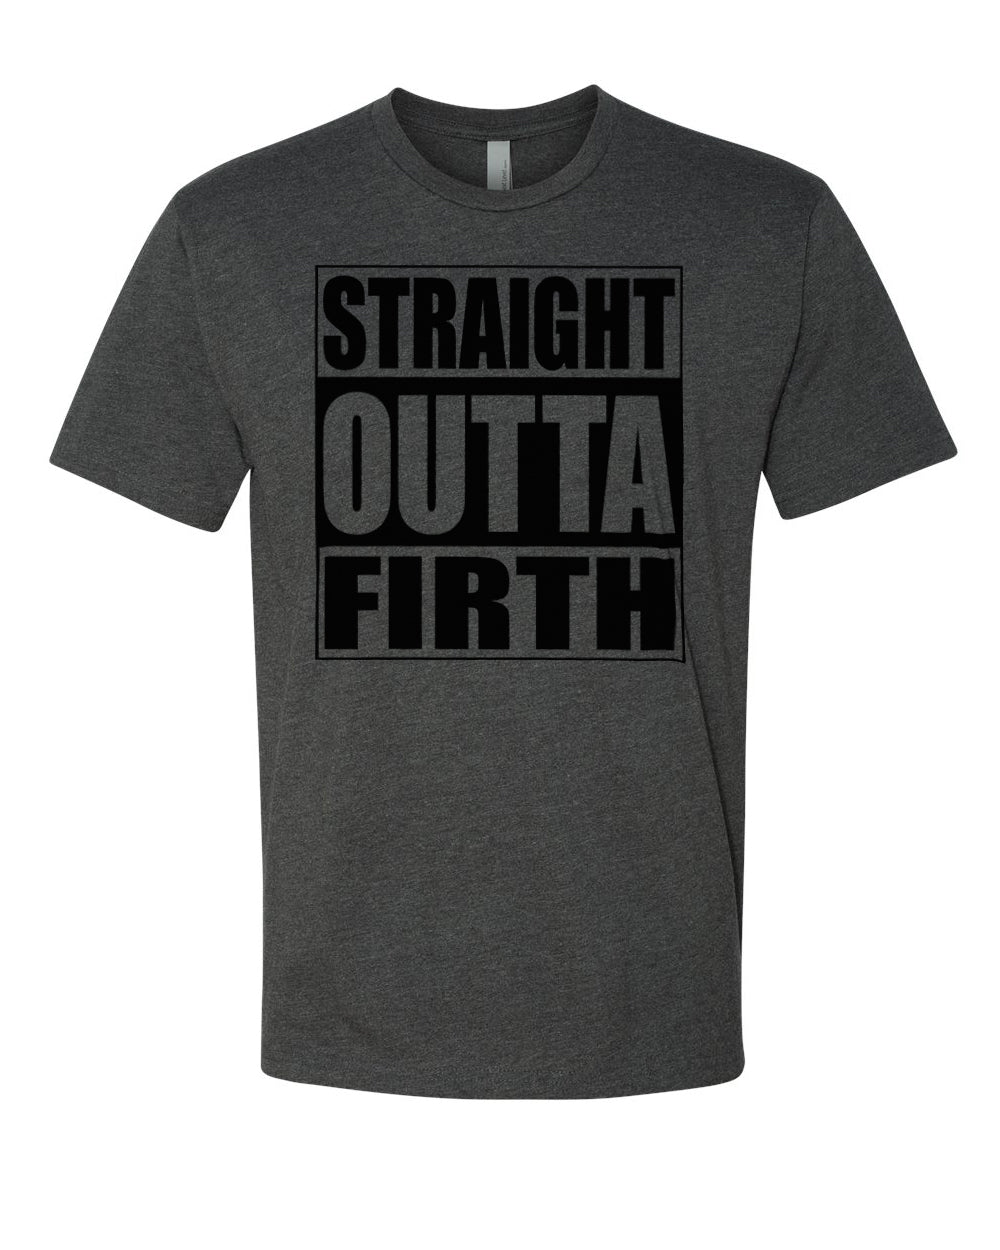 FIRTH HS – Next Level Fitted Crew Tee – Straight Outta Firth (Black/Charcoal)